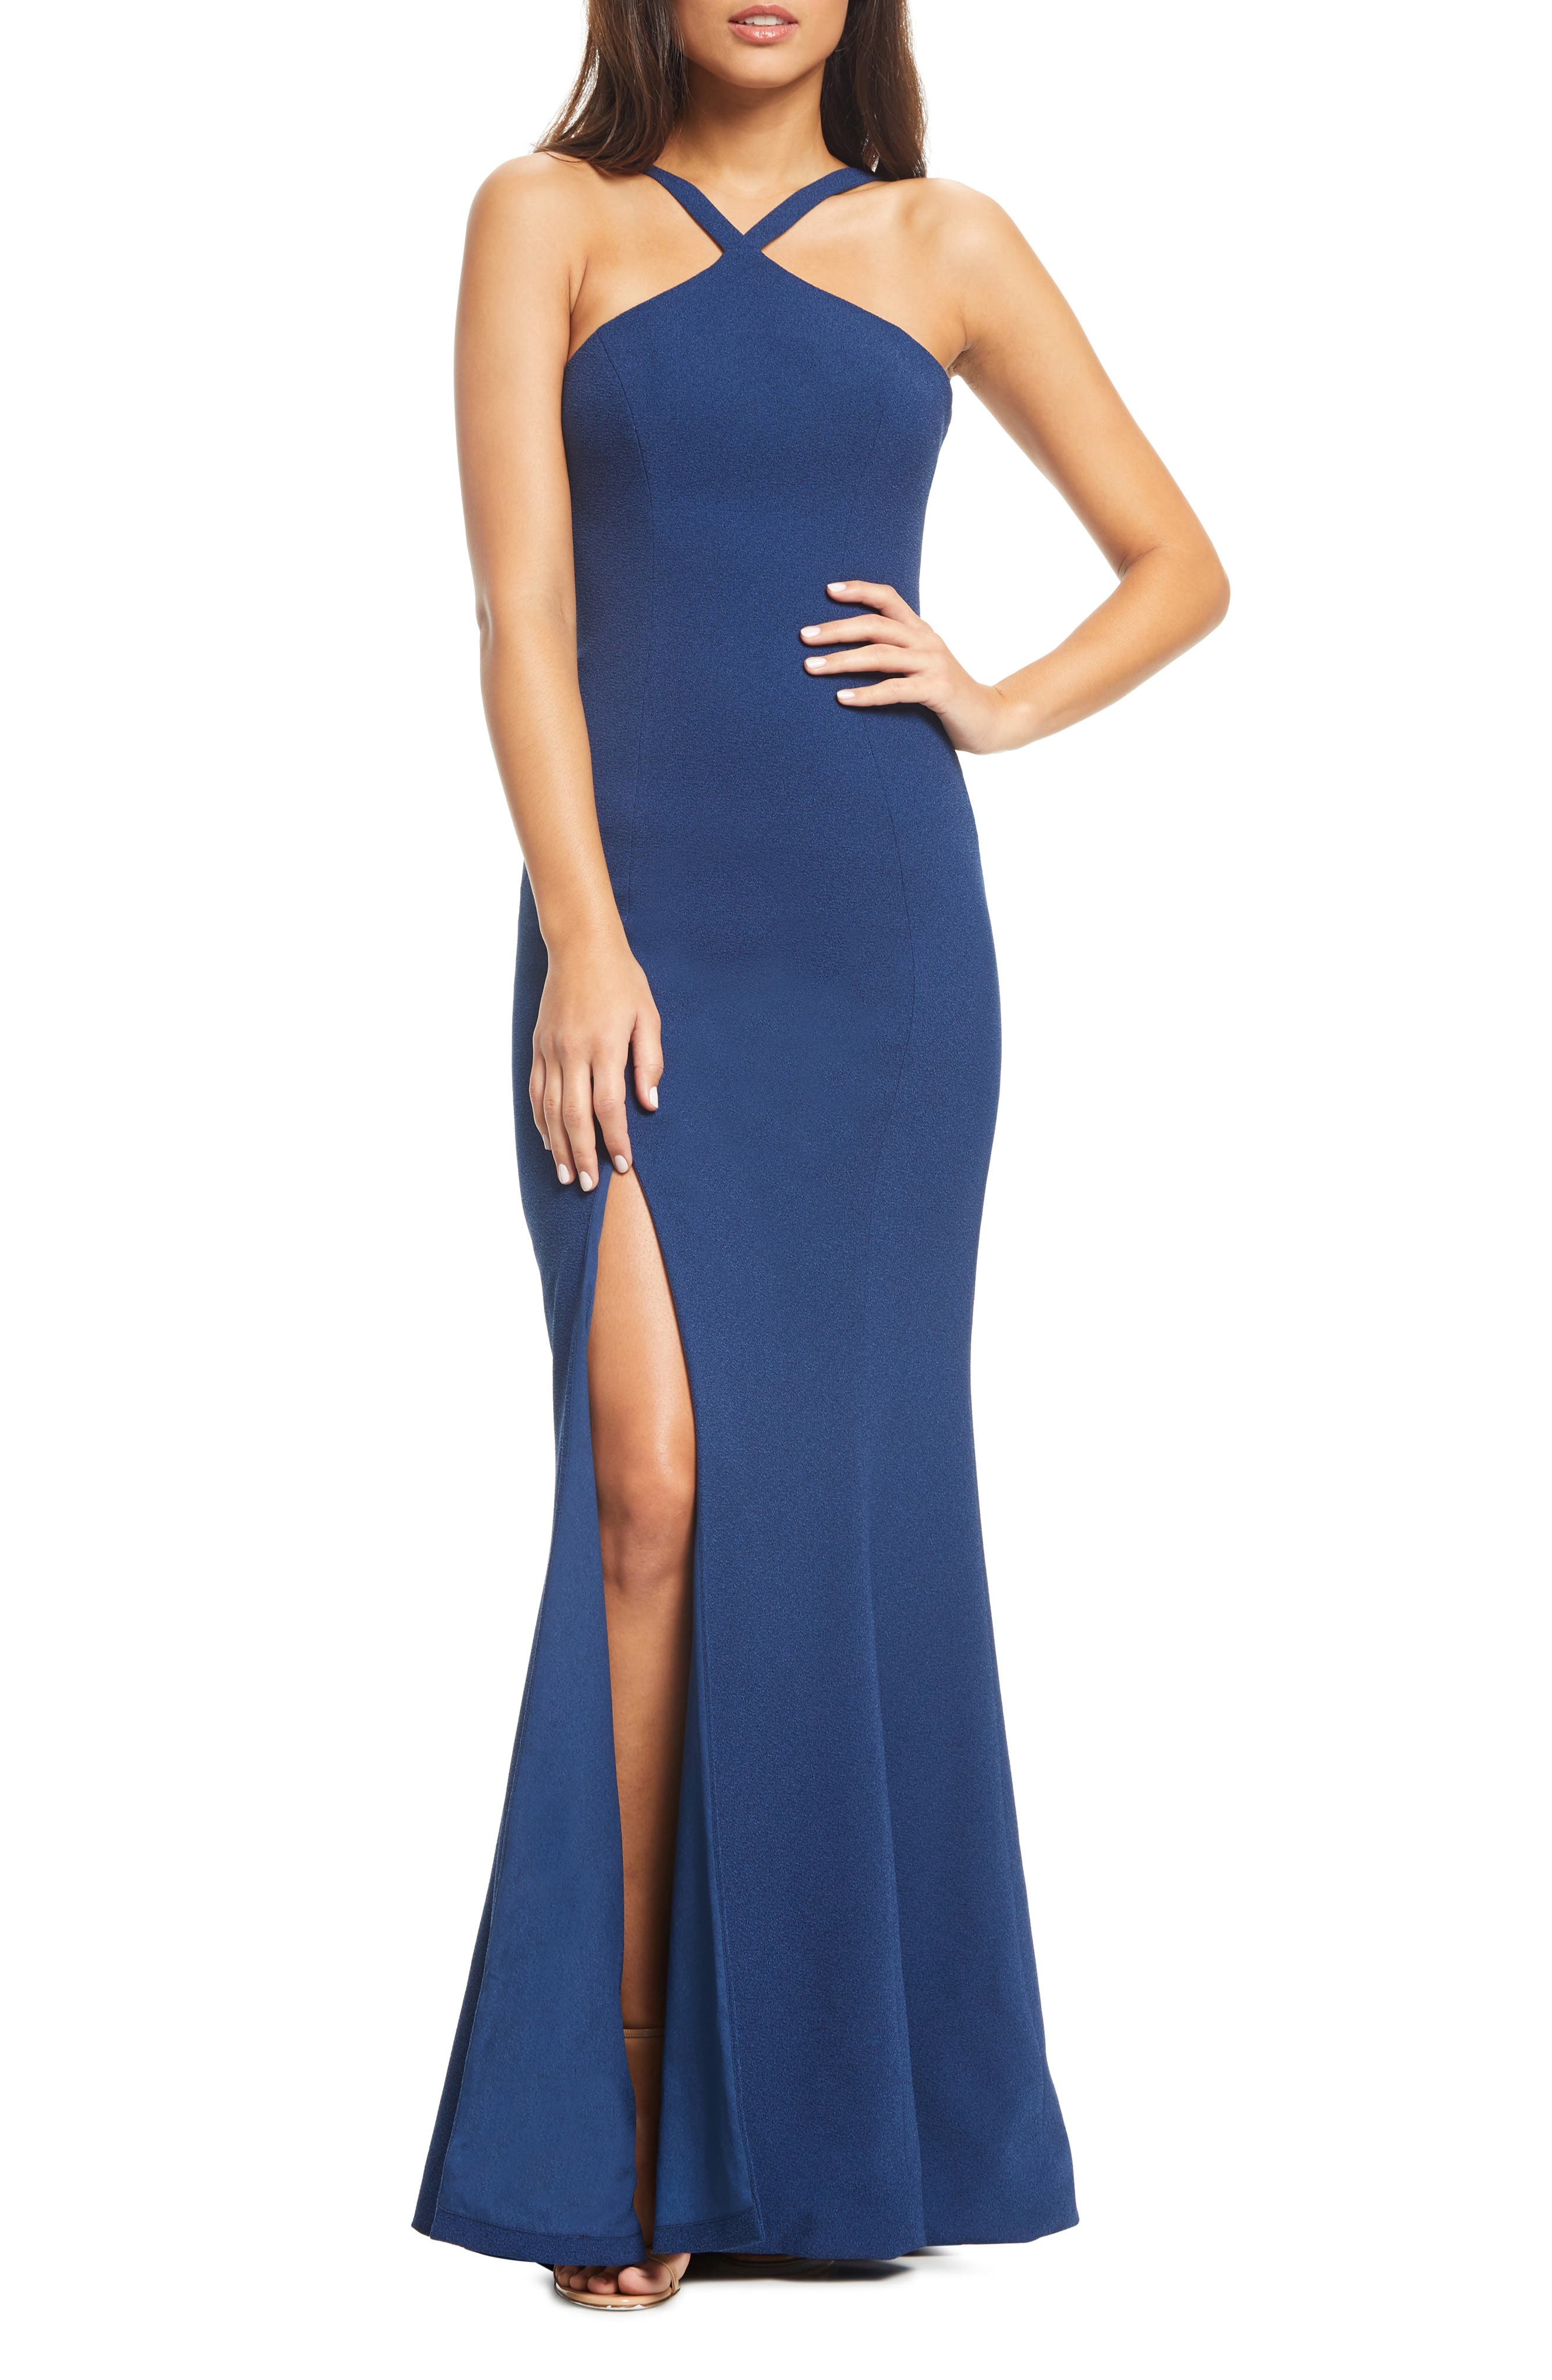 DRESS THE POPULATION Brianna Halter Style Trumpet Gown, Main, color, PACIFIC